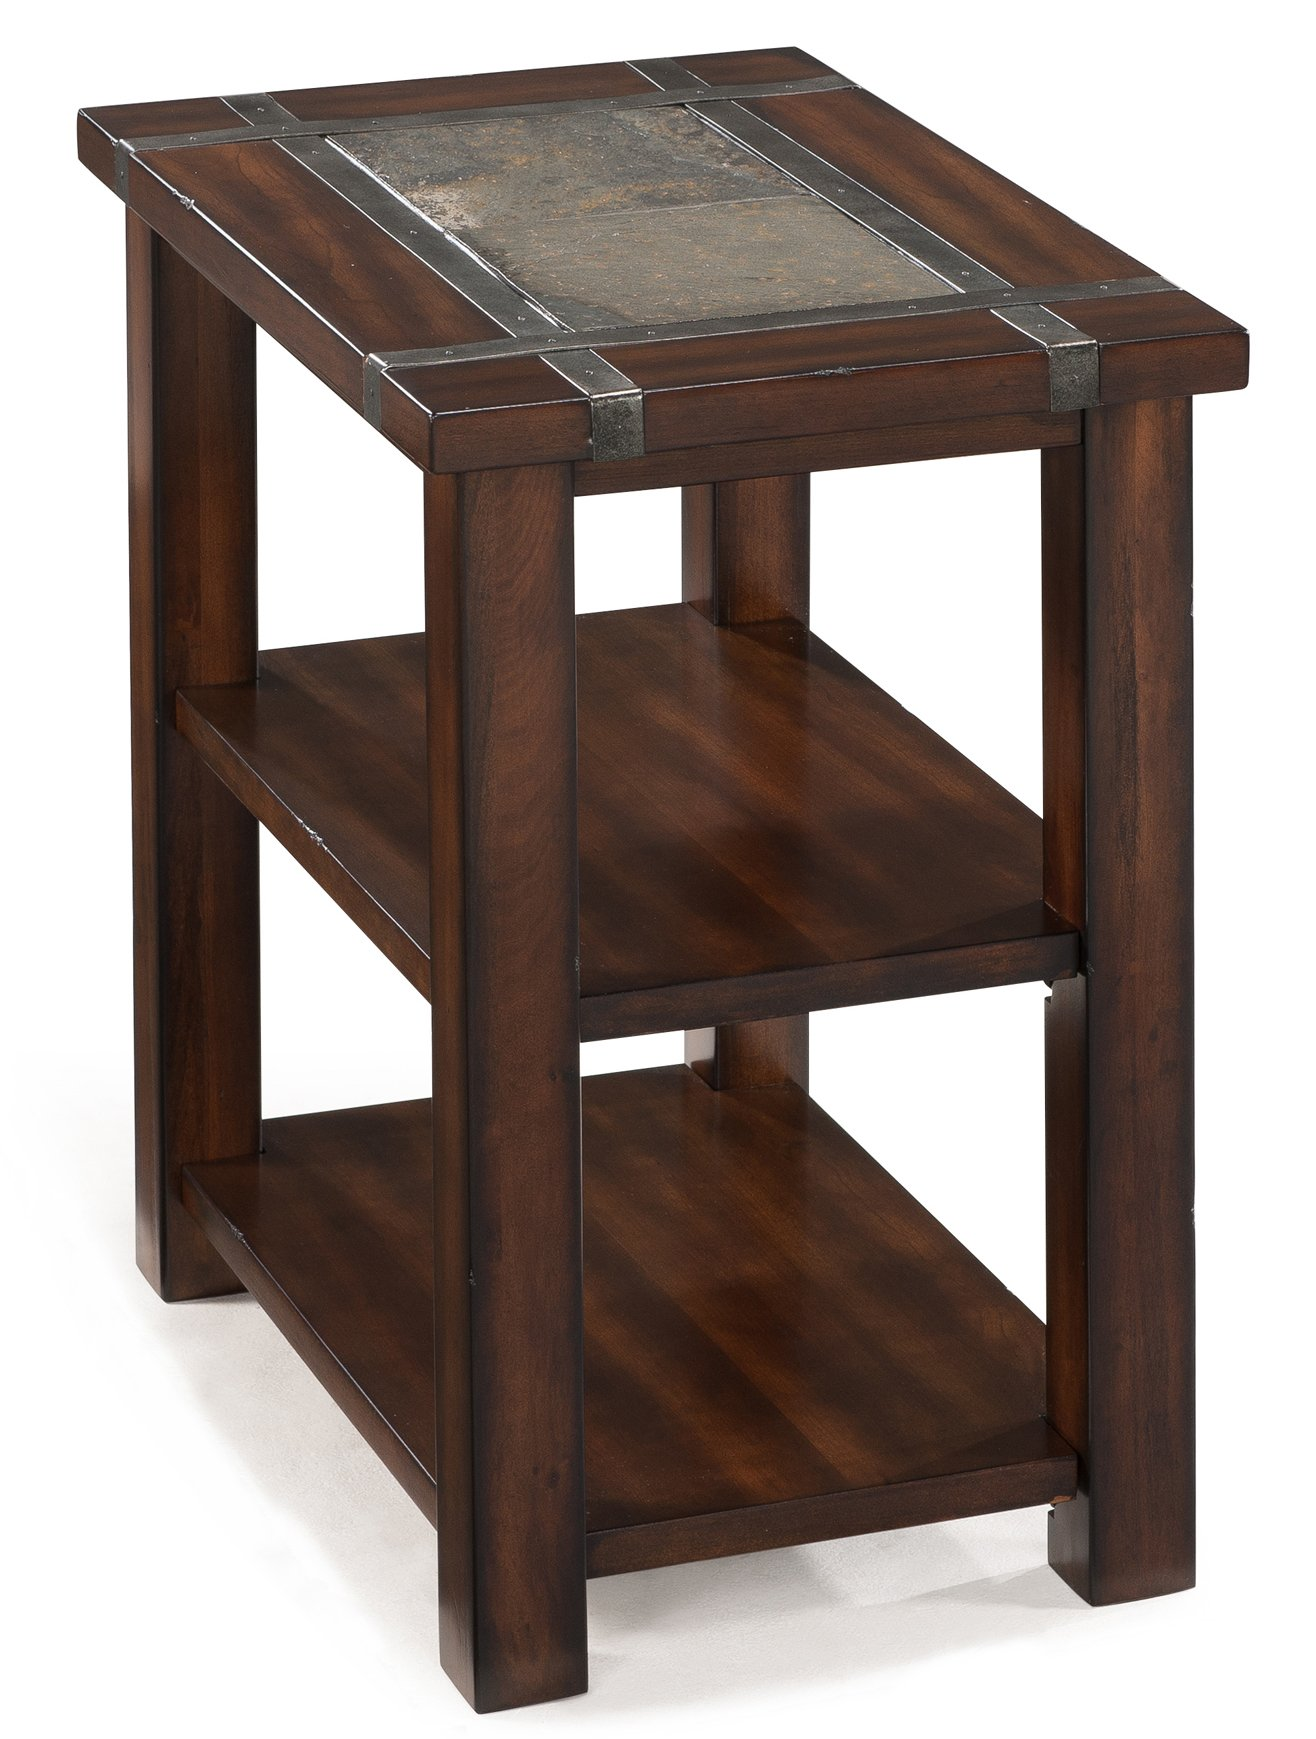 Slate and cherry brown small end table roanoke rc willey furniture store